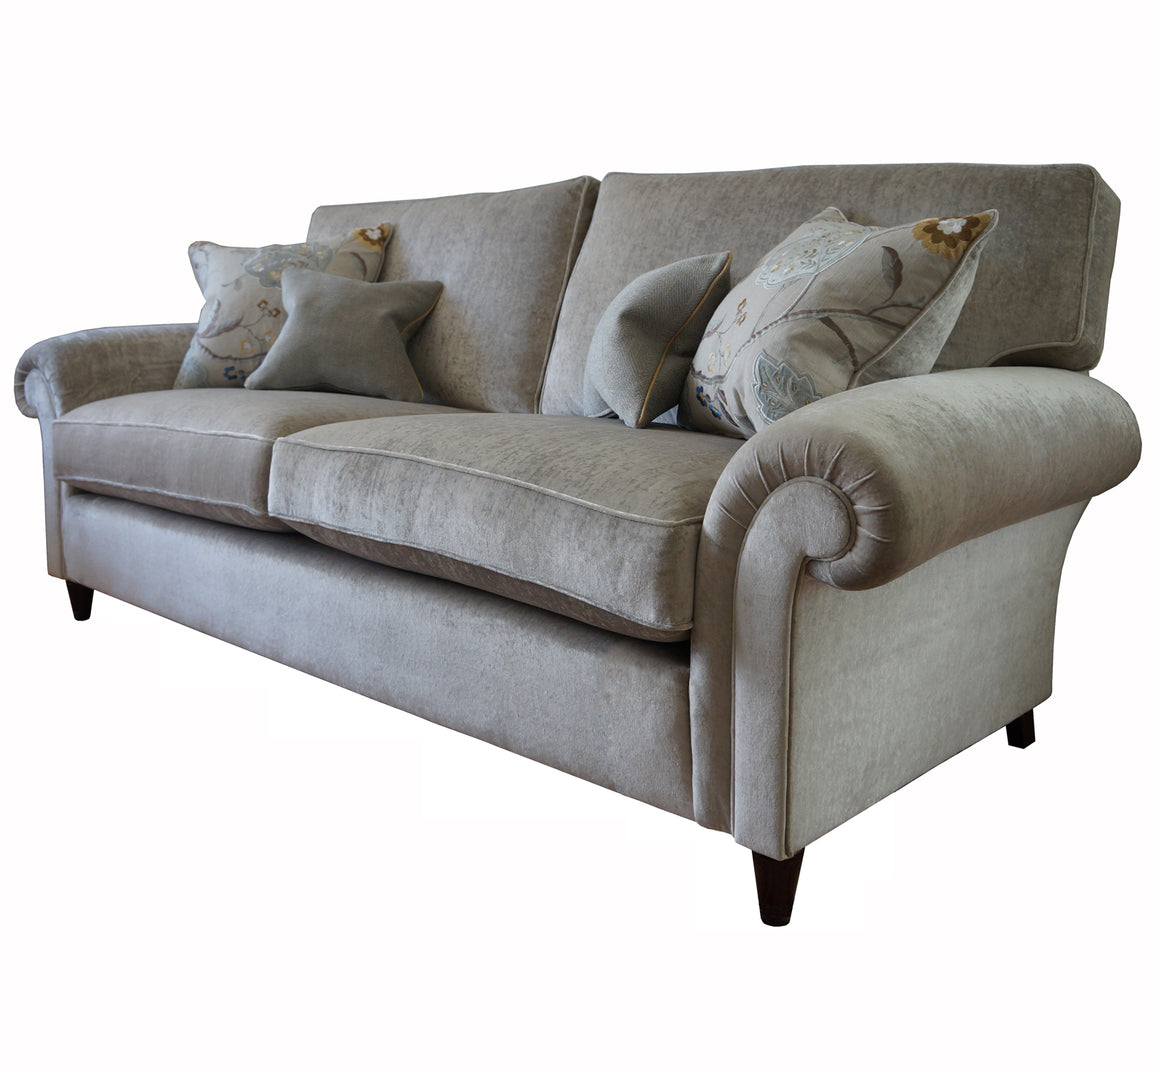 A Walton Cushion Back Sofa in Wemyss Ashton Velvet